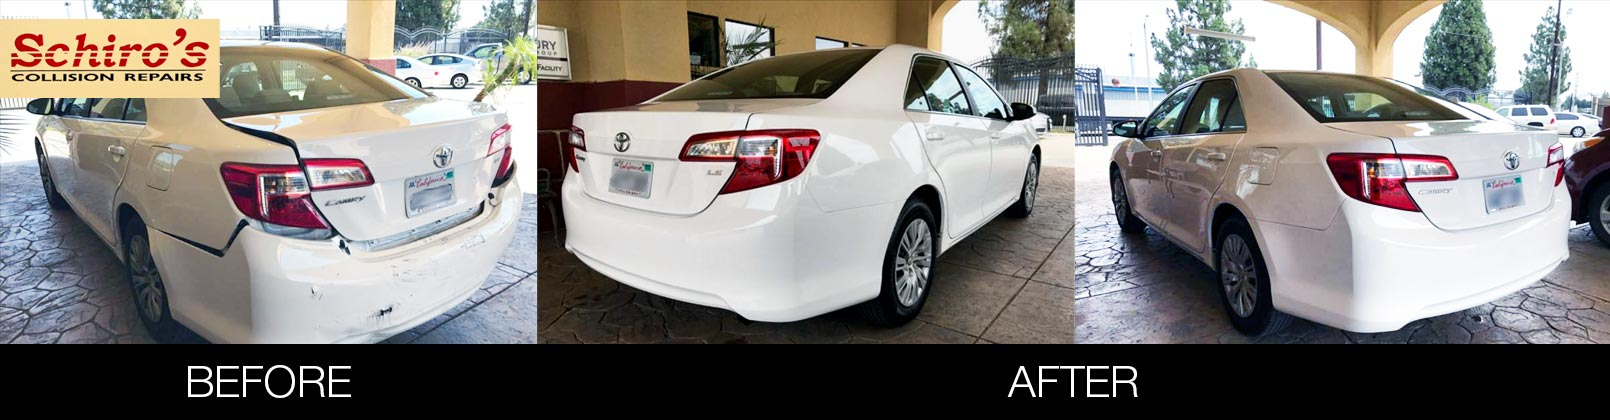 Schiro's Collision Before After Toyota Camry Camry